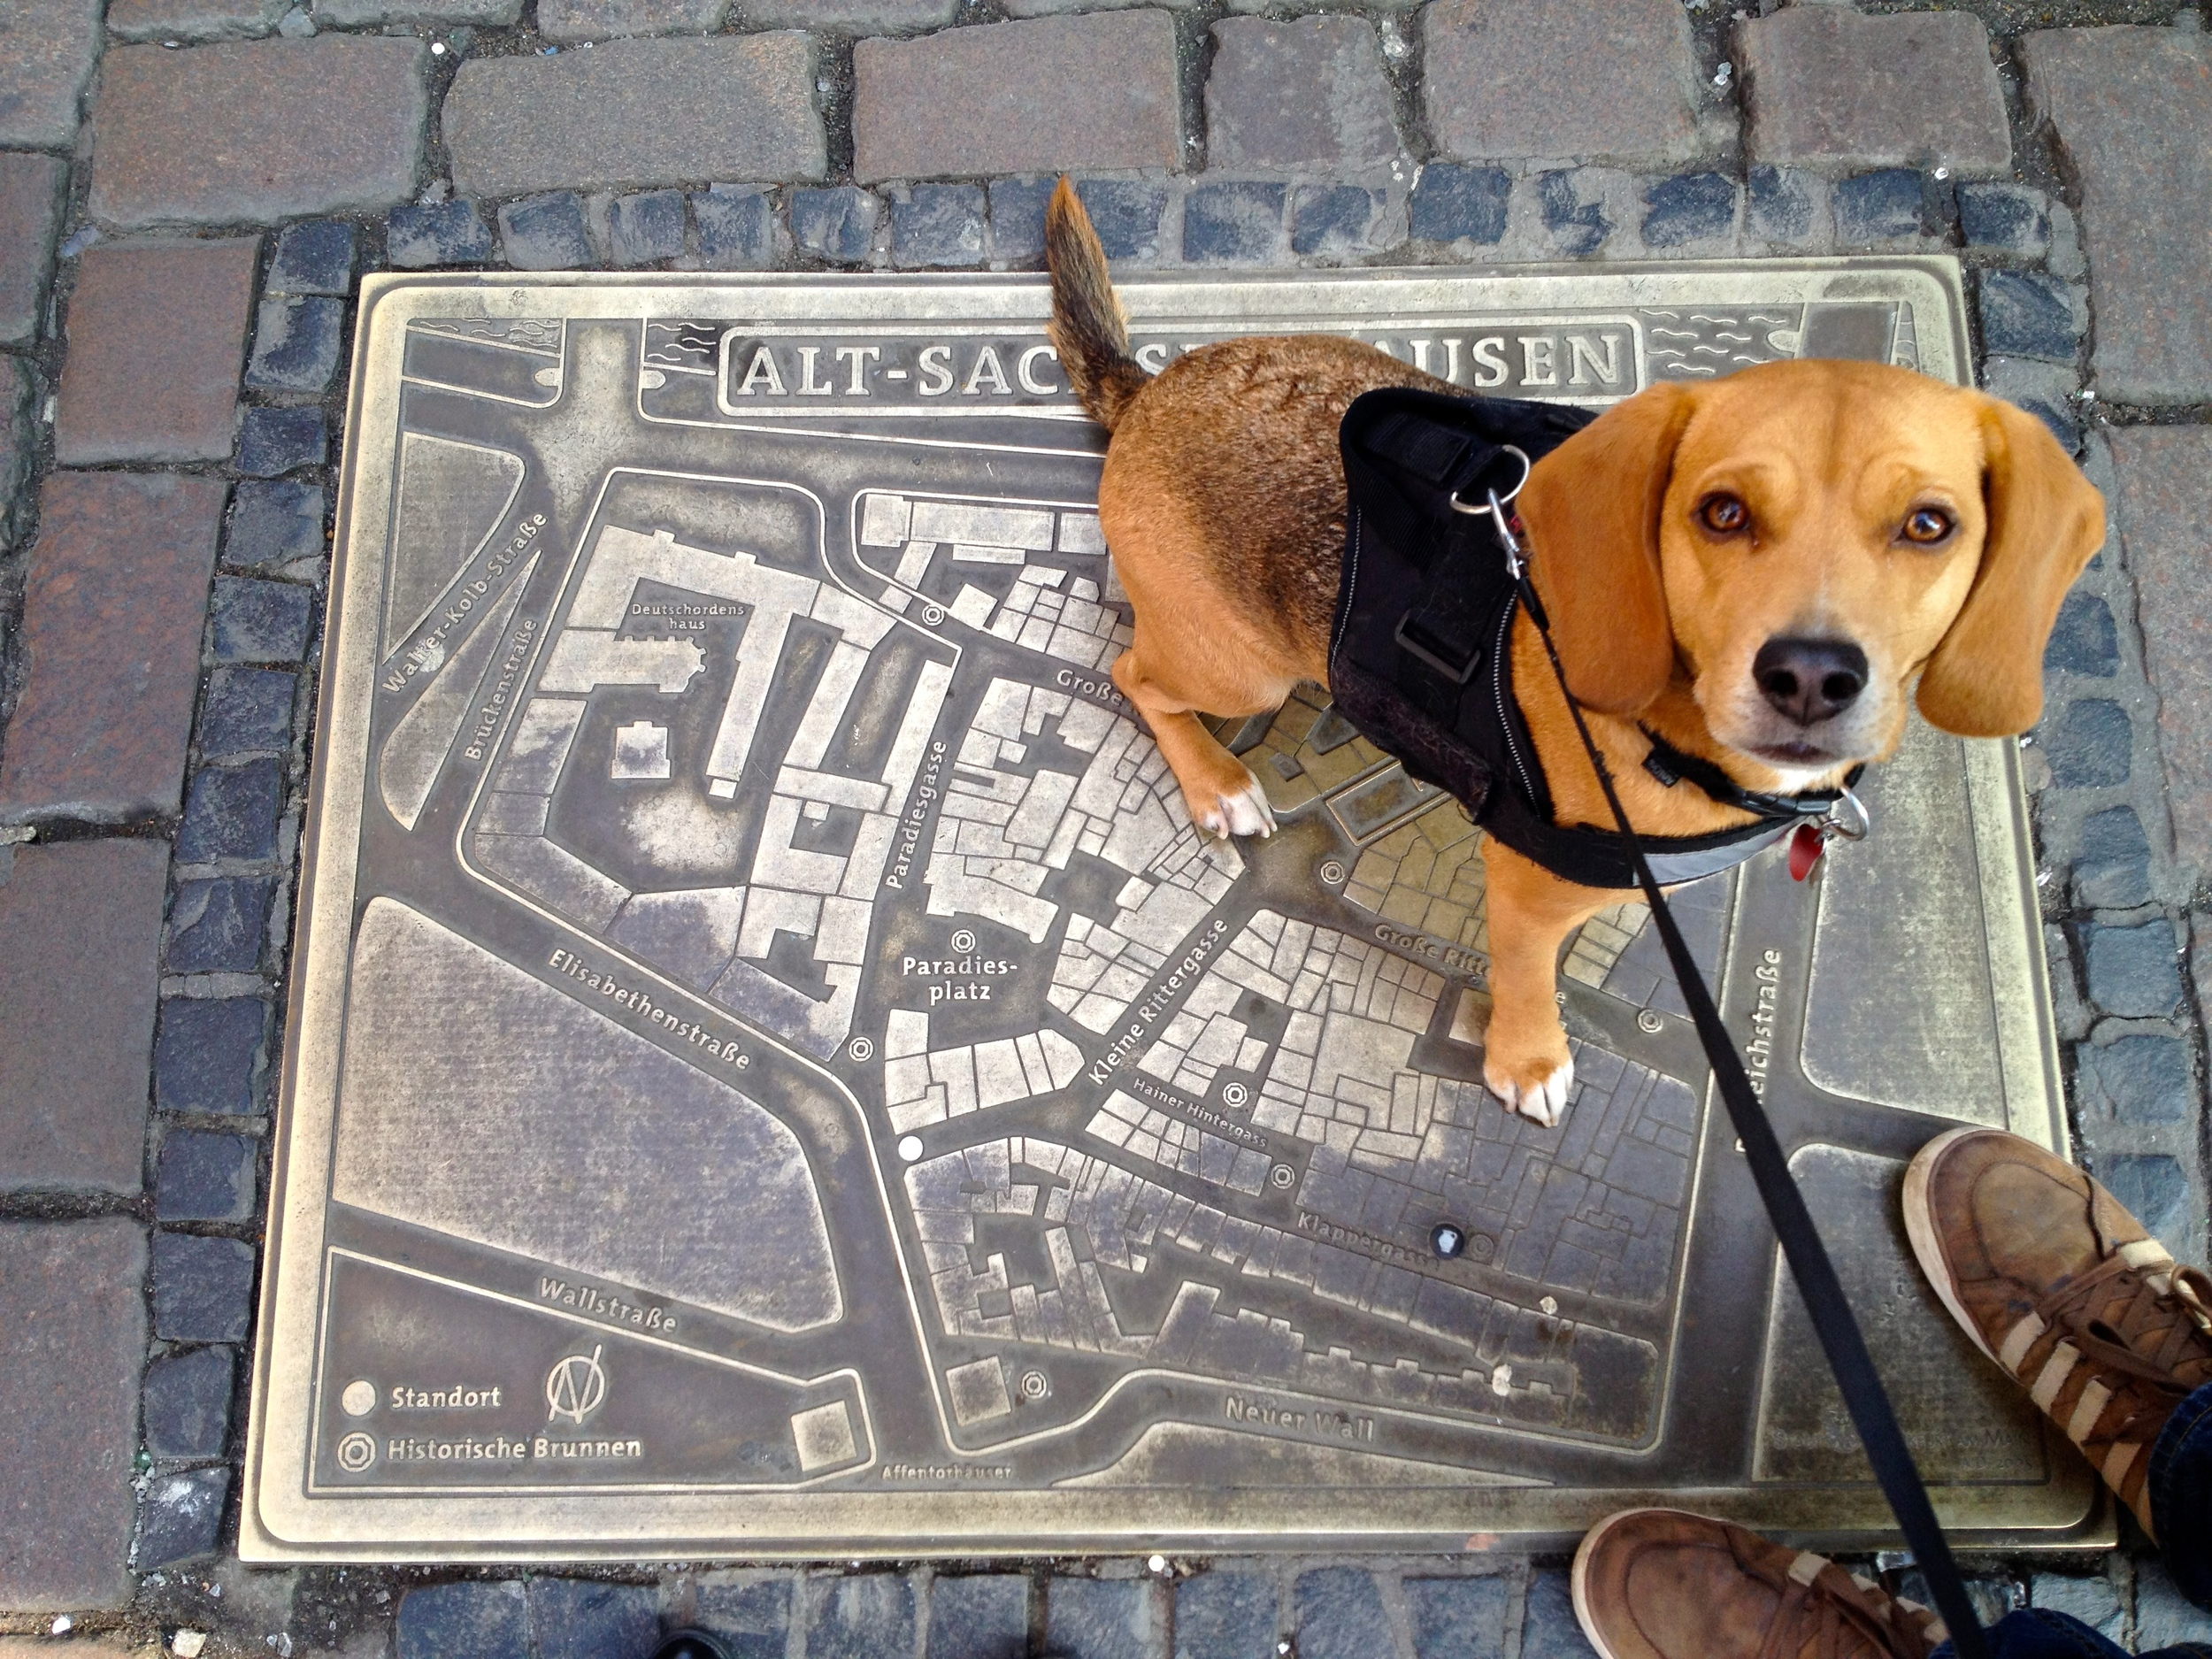 A map of  Sachsenhausen  in the street (with Leo sitting on it)